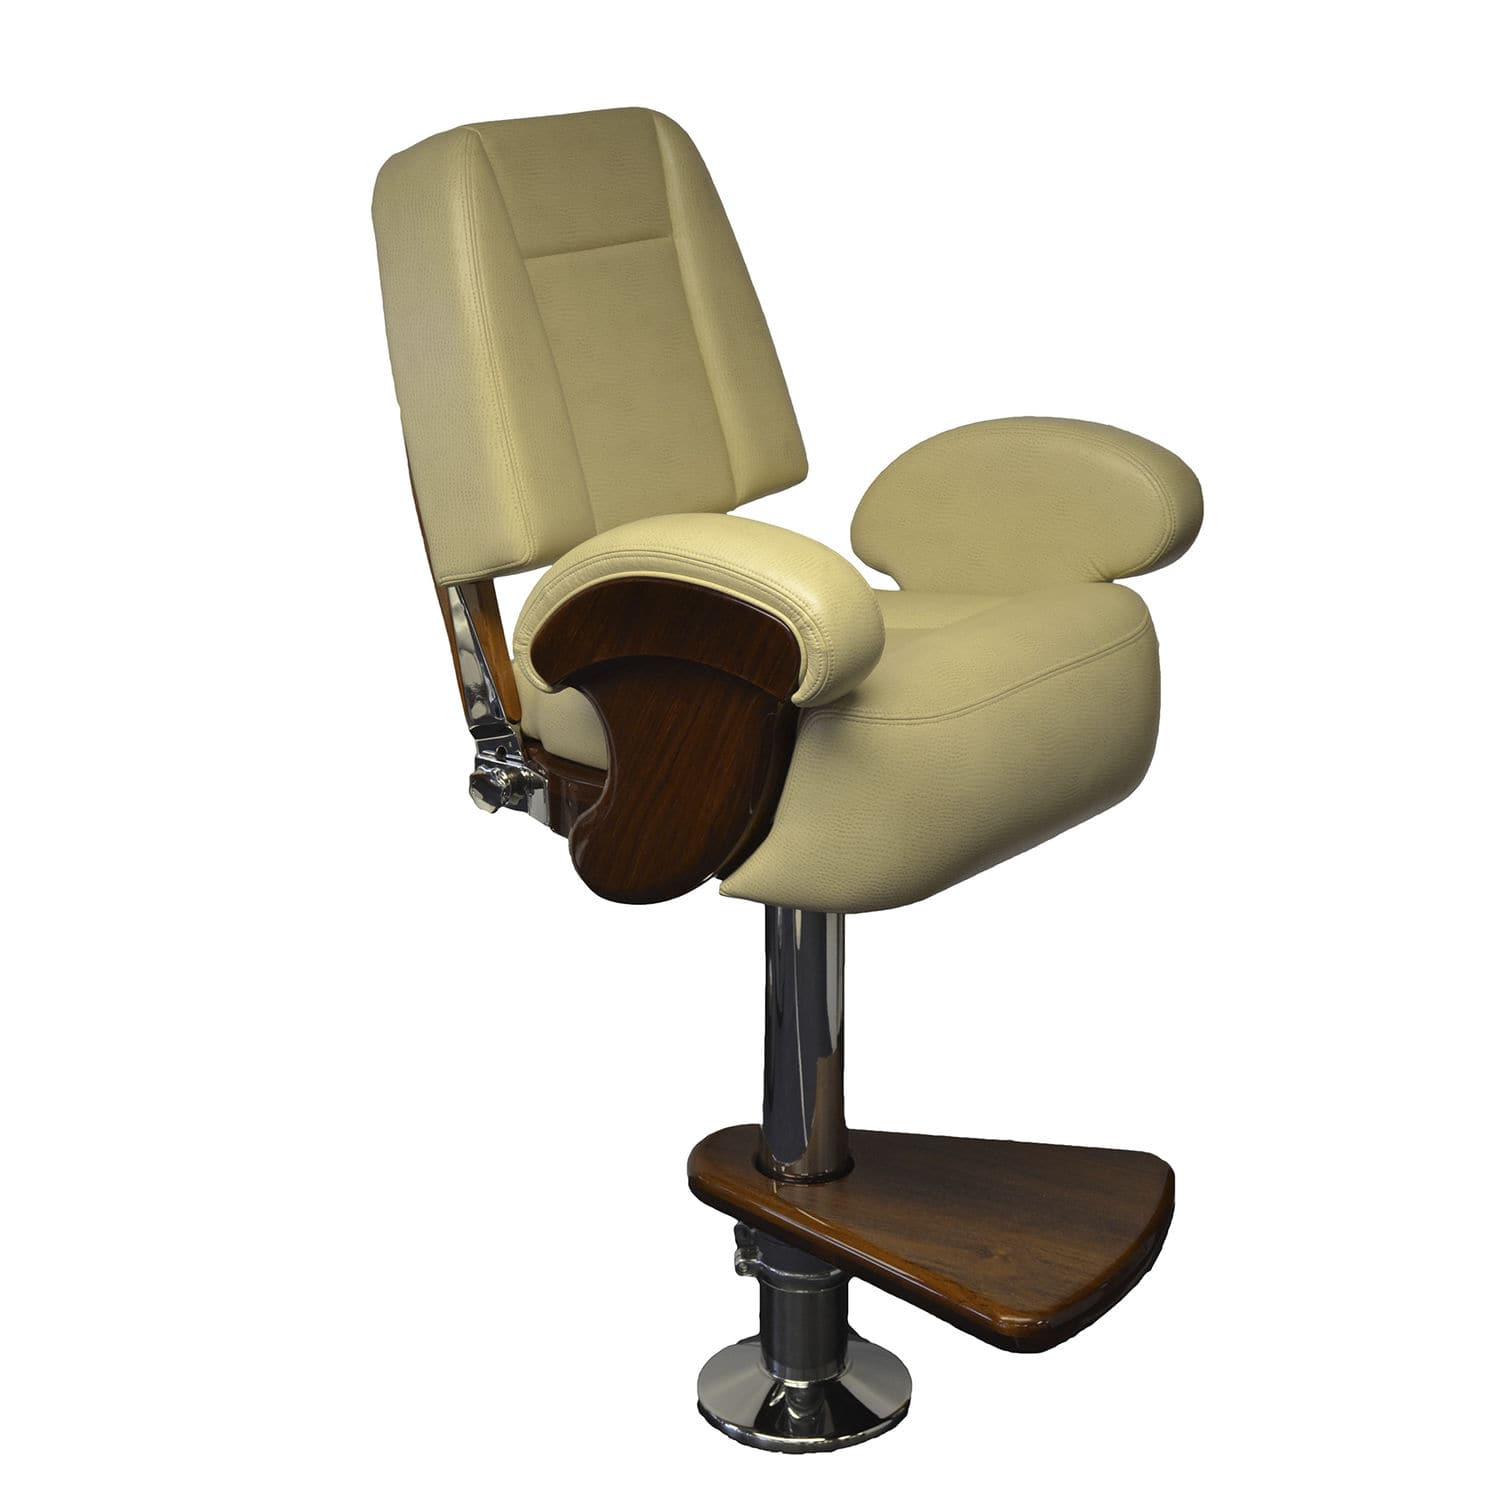 Helm Seat / For Boats / With Armrests / Adjustable   Maximus